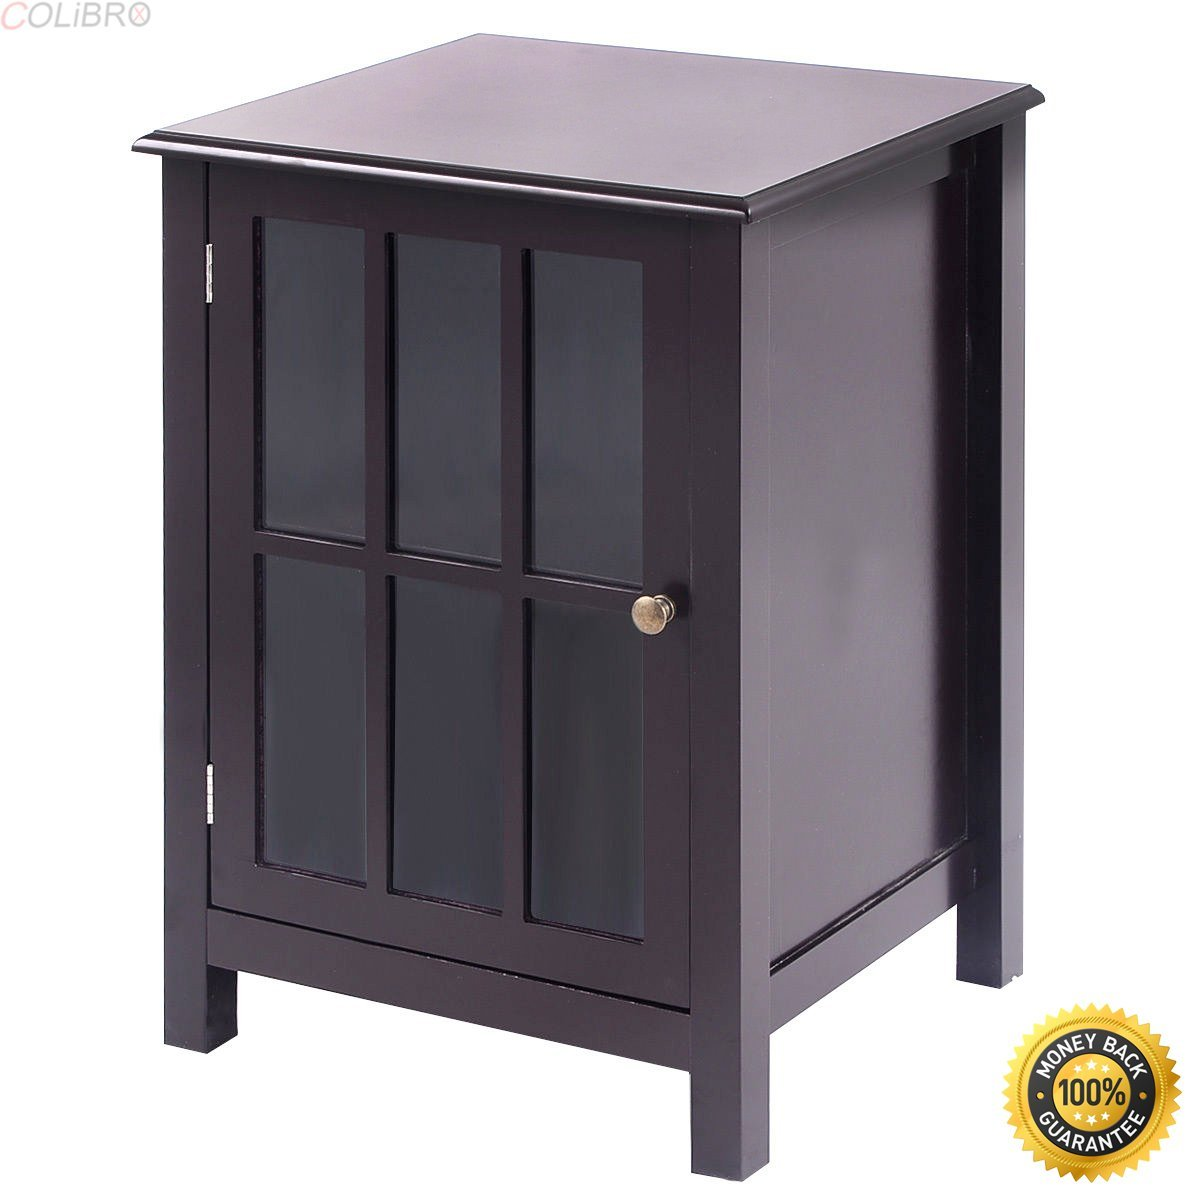 COLIBROX--One Door Accent Cabinet Storage Cabinet 2 Shelf Display Home Decor Coffee New,home storage cabinets,free standing storage cabinets with doors,home depot garage cabinets